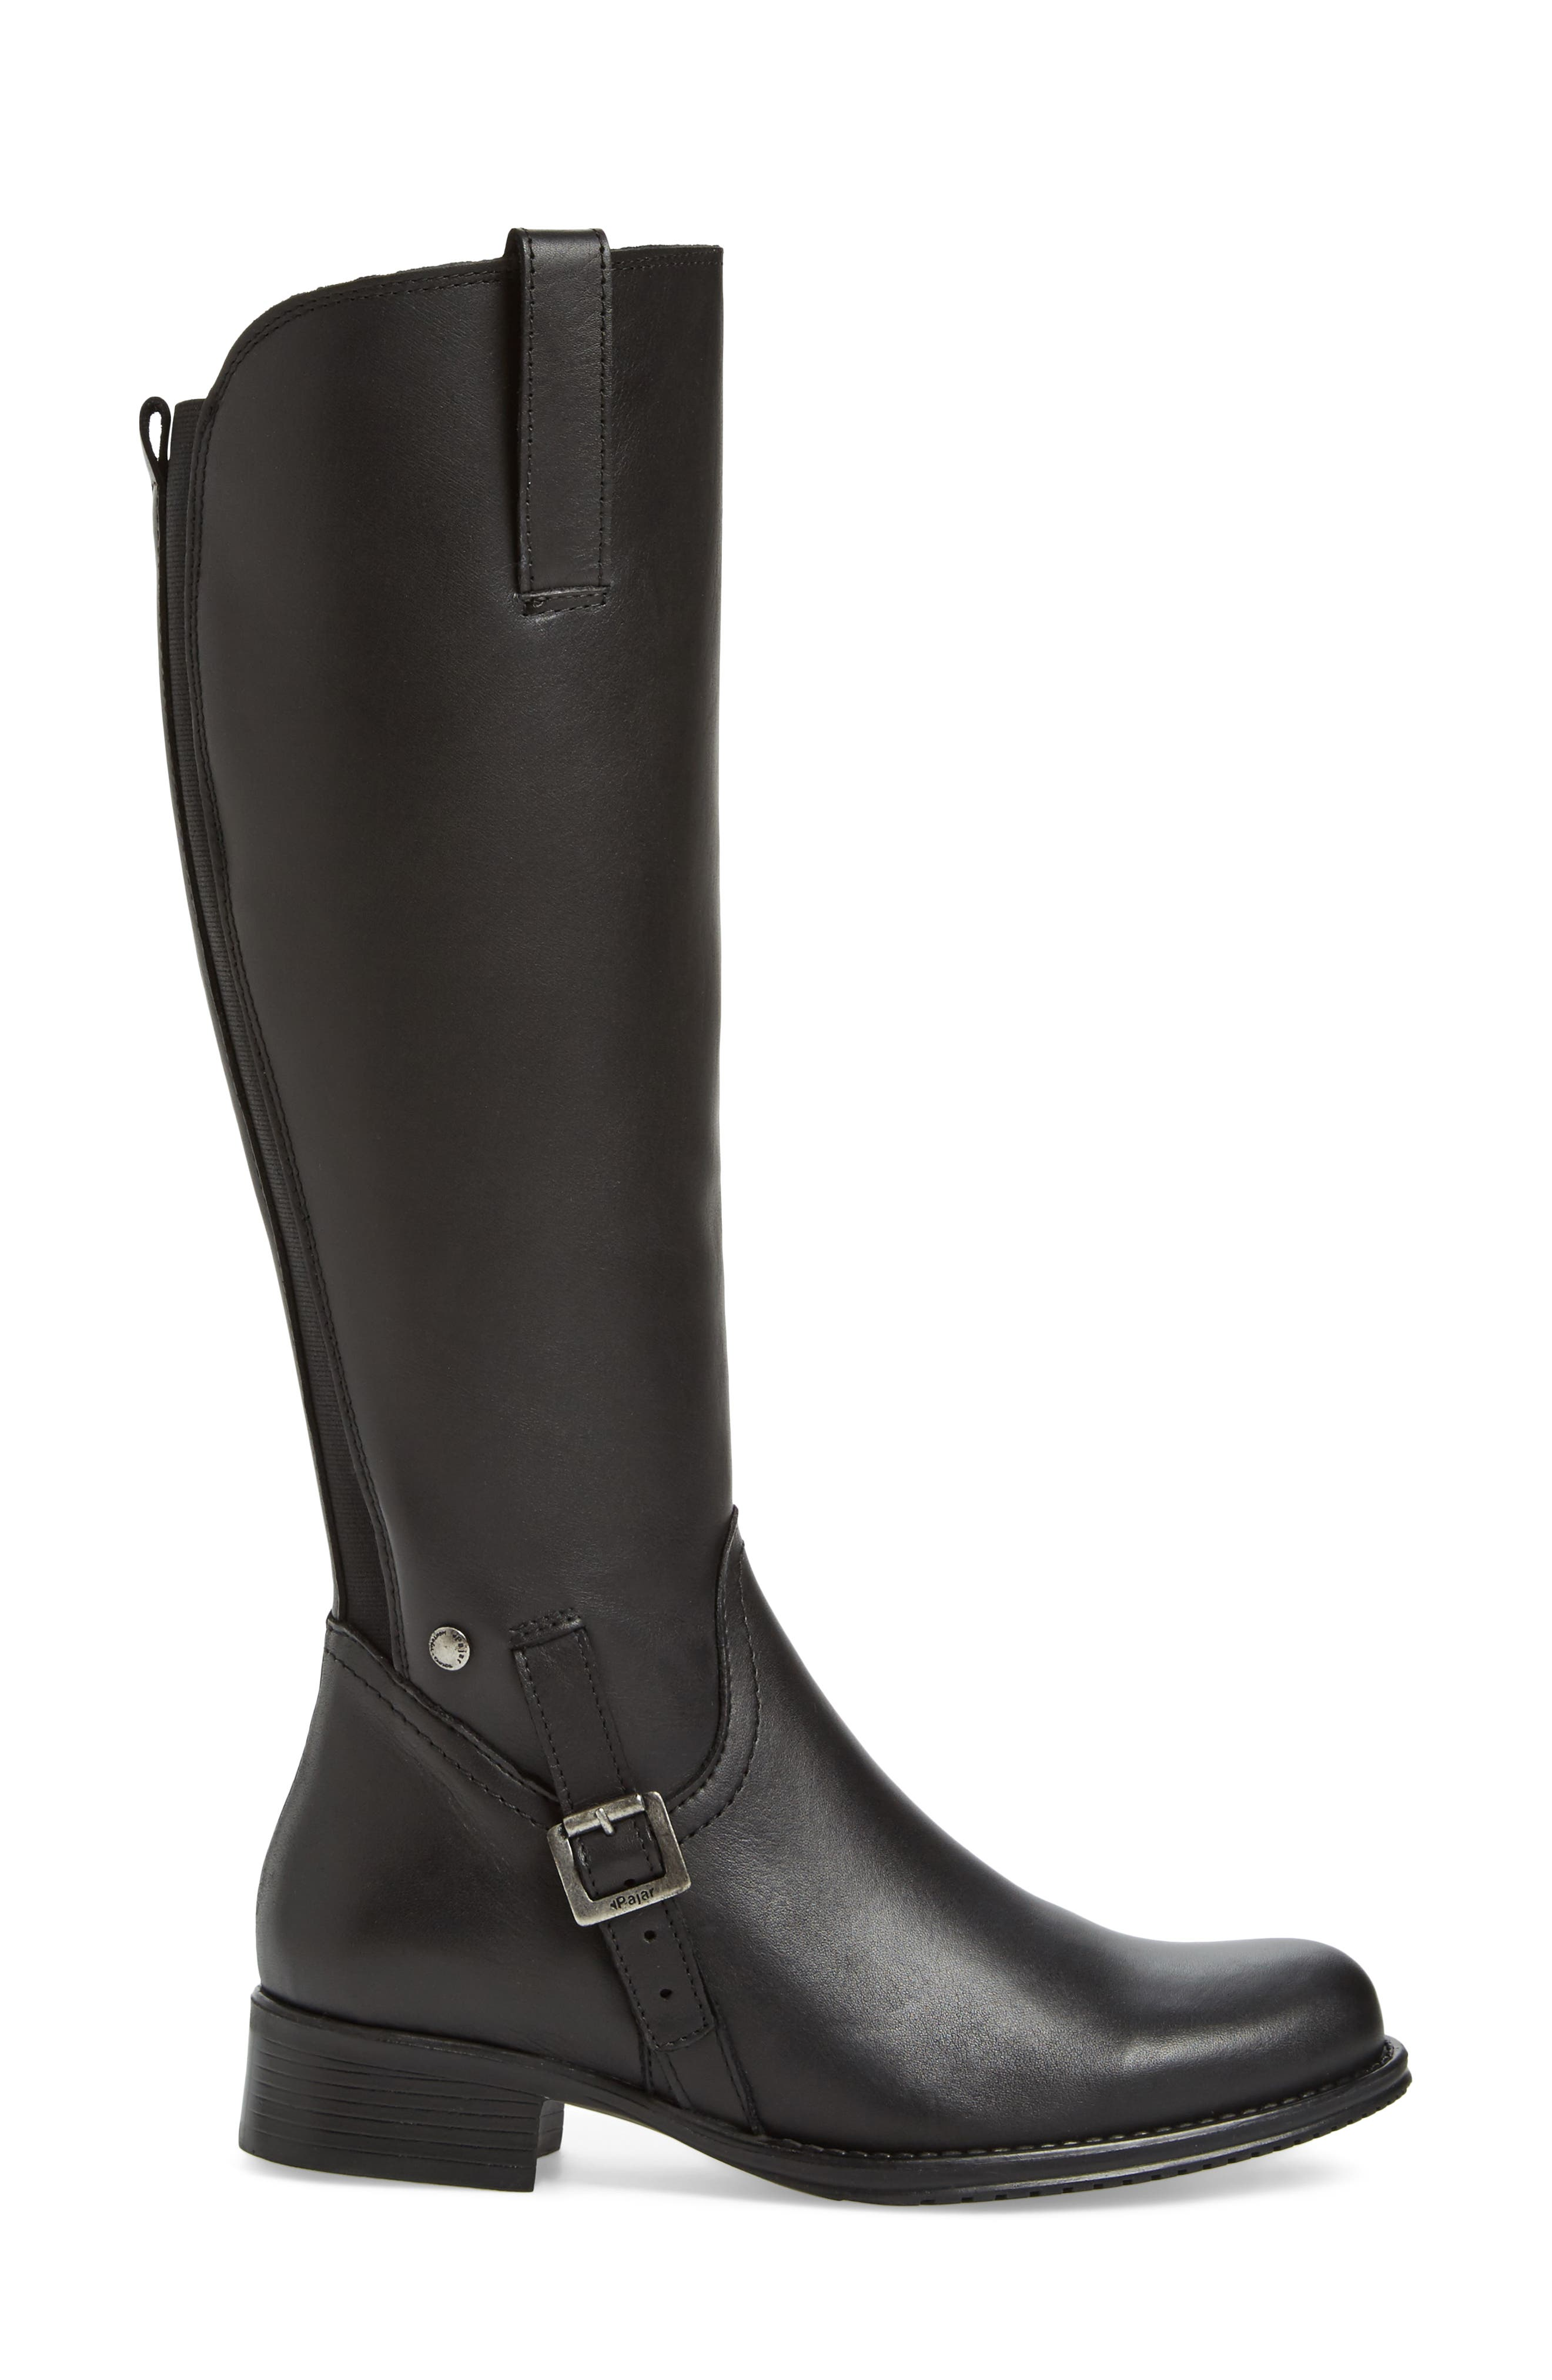 Dogueno Waterproof Boot,                             Alternate thumbnail 3, color,                             Black Leather